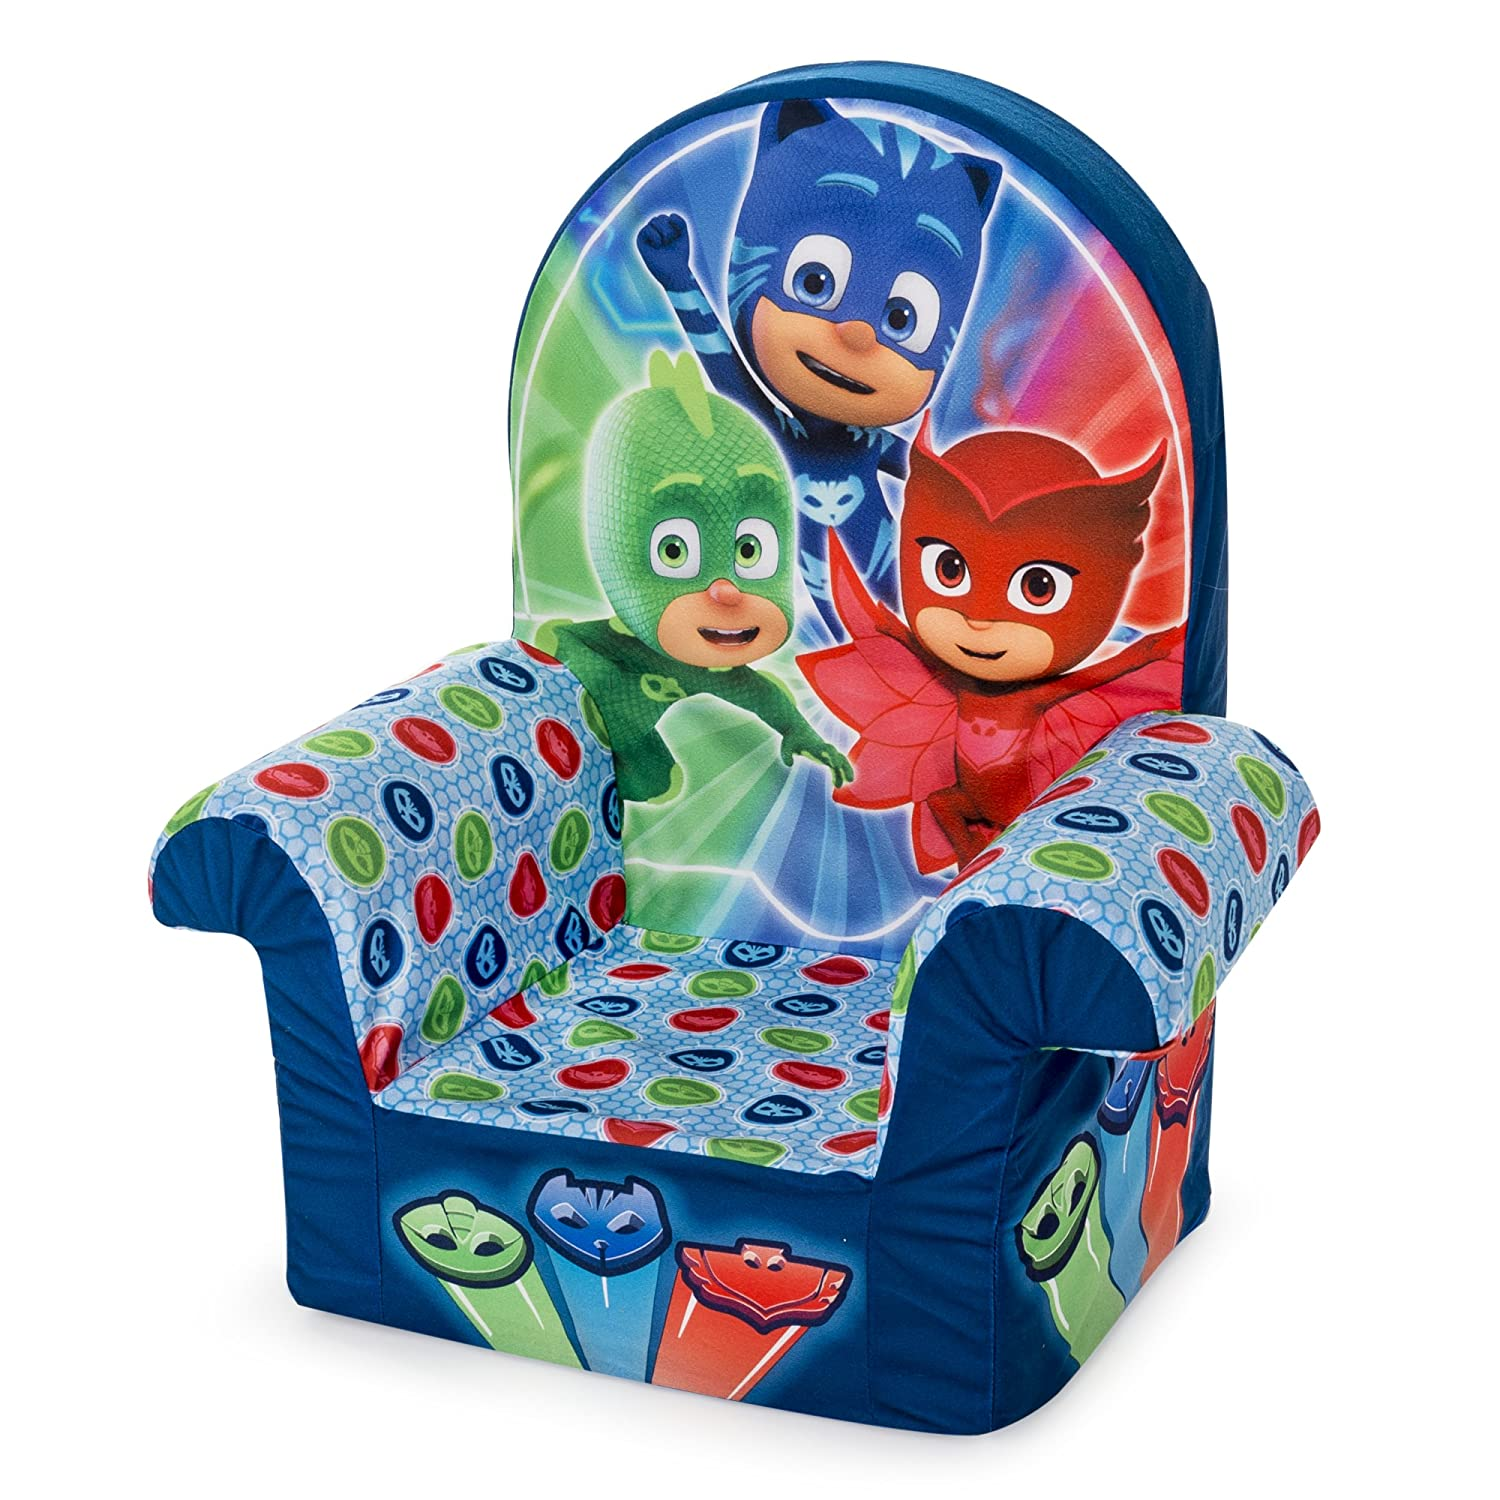 Fabulous Marshmallow Furniture Childrens Foam High Back Chair Pj Masks High Back Chair Andrewgaddart Wooden Chair Designs For Living Room Andrewgaddartcom